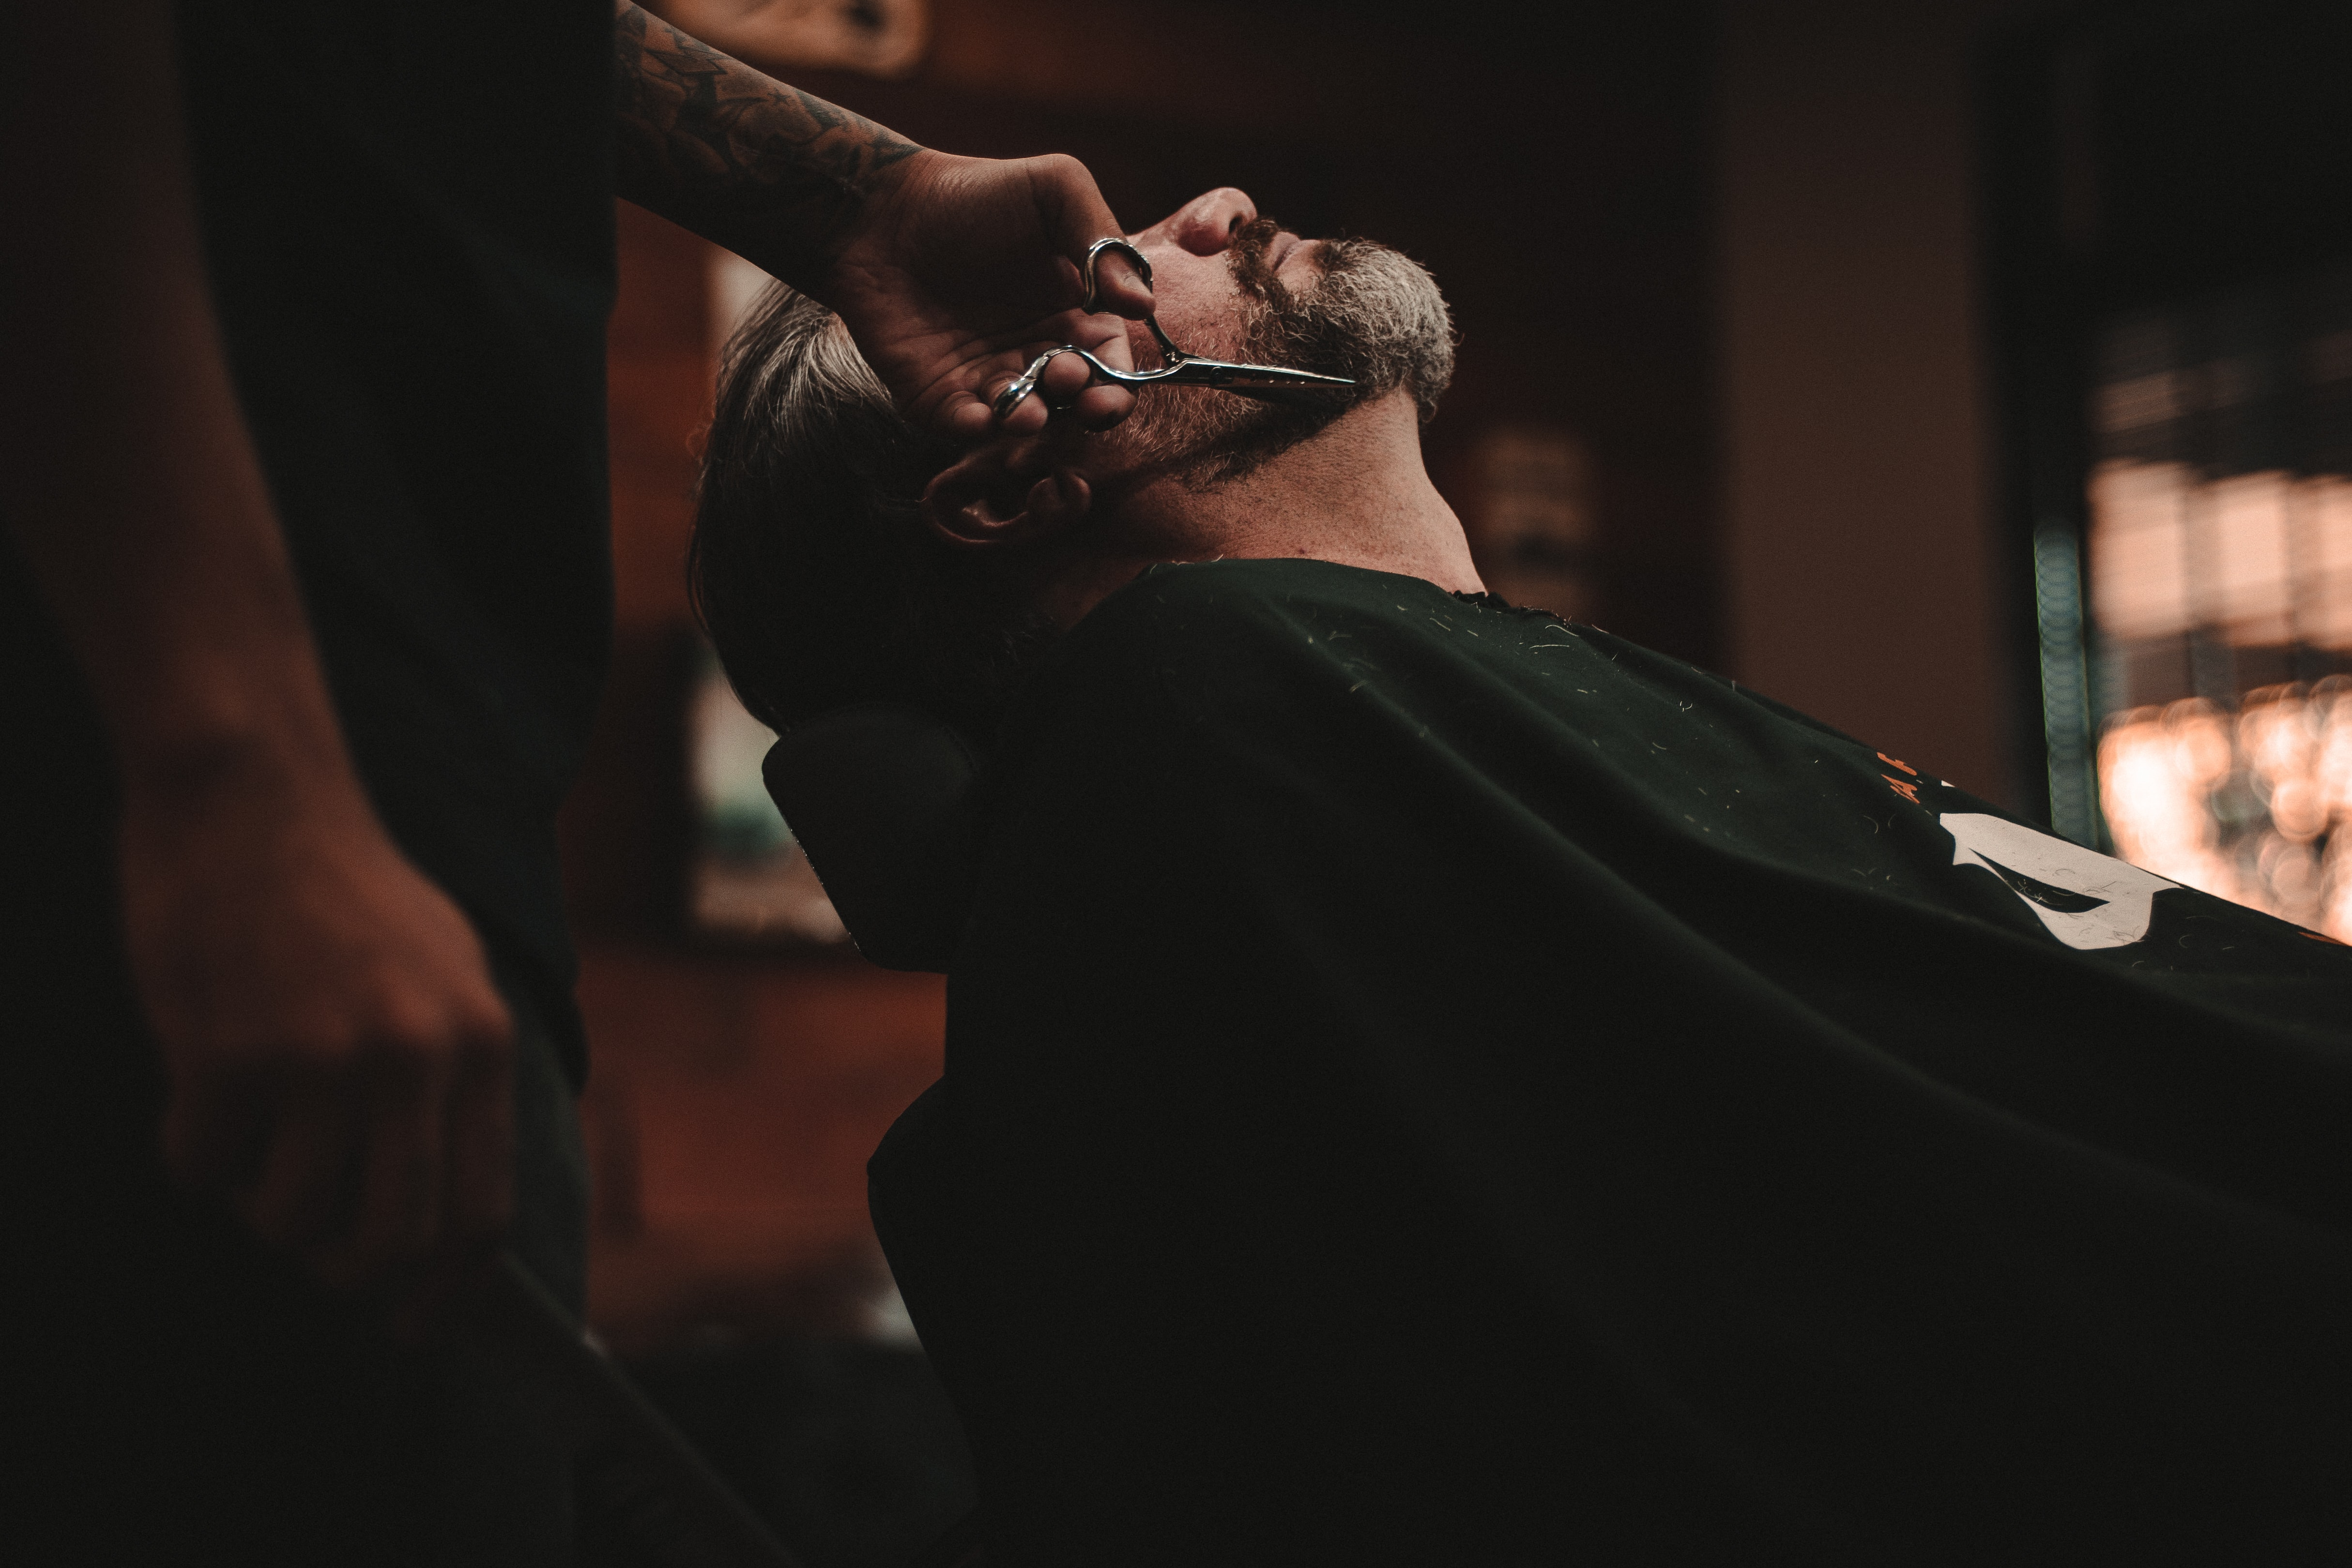 A man getting his beard trimmed at a barbershop in Cianorte